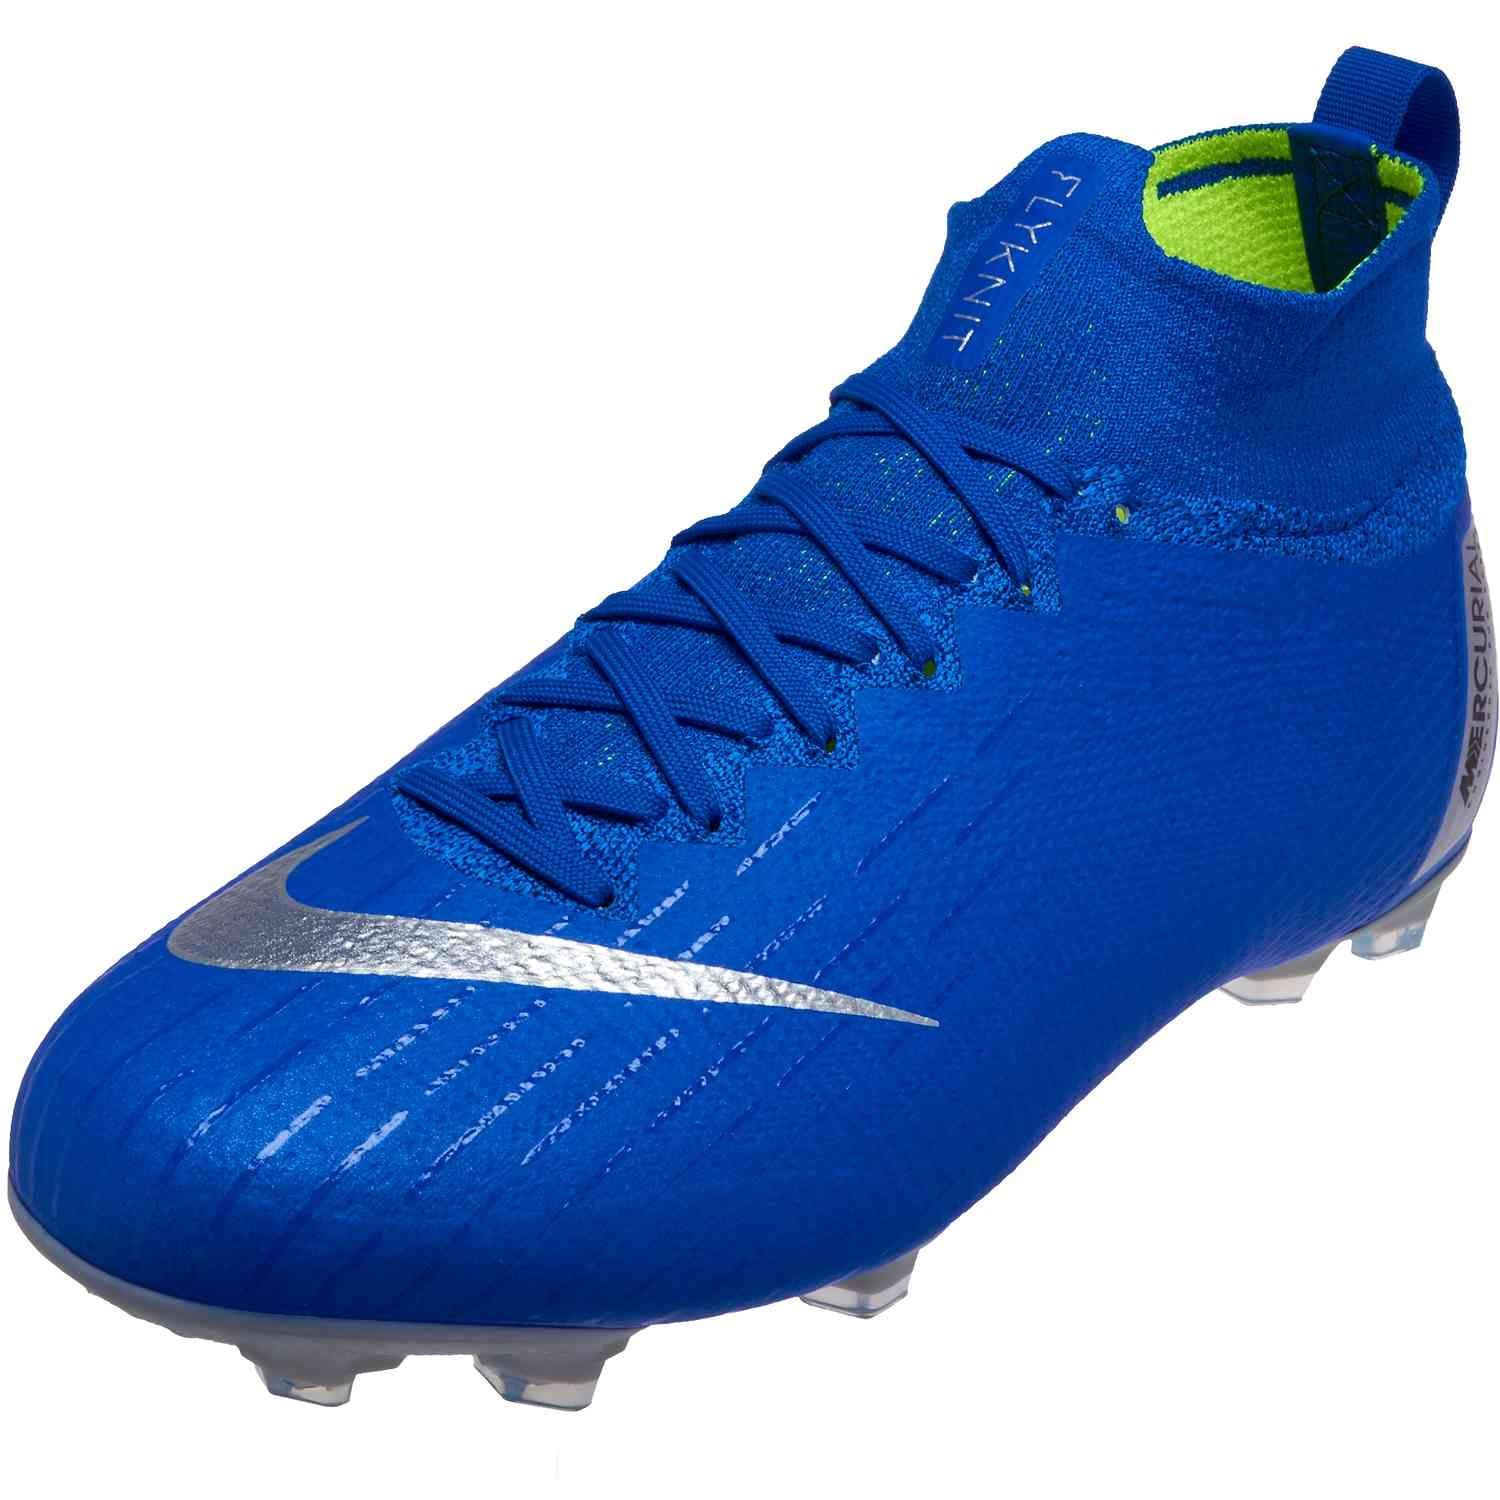 Kids Nike Superfly 6 Elite Soccer Cleats Nike Soccer Shoes Girls Football Boots Soccer Boots